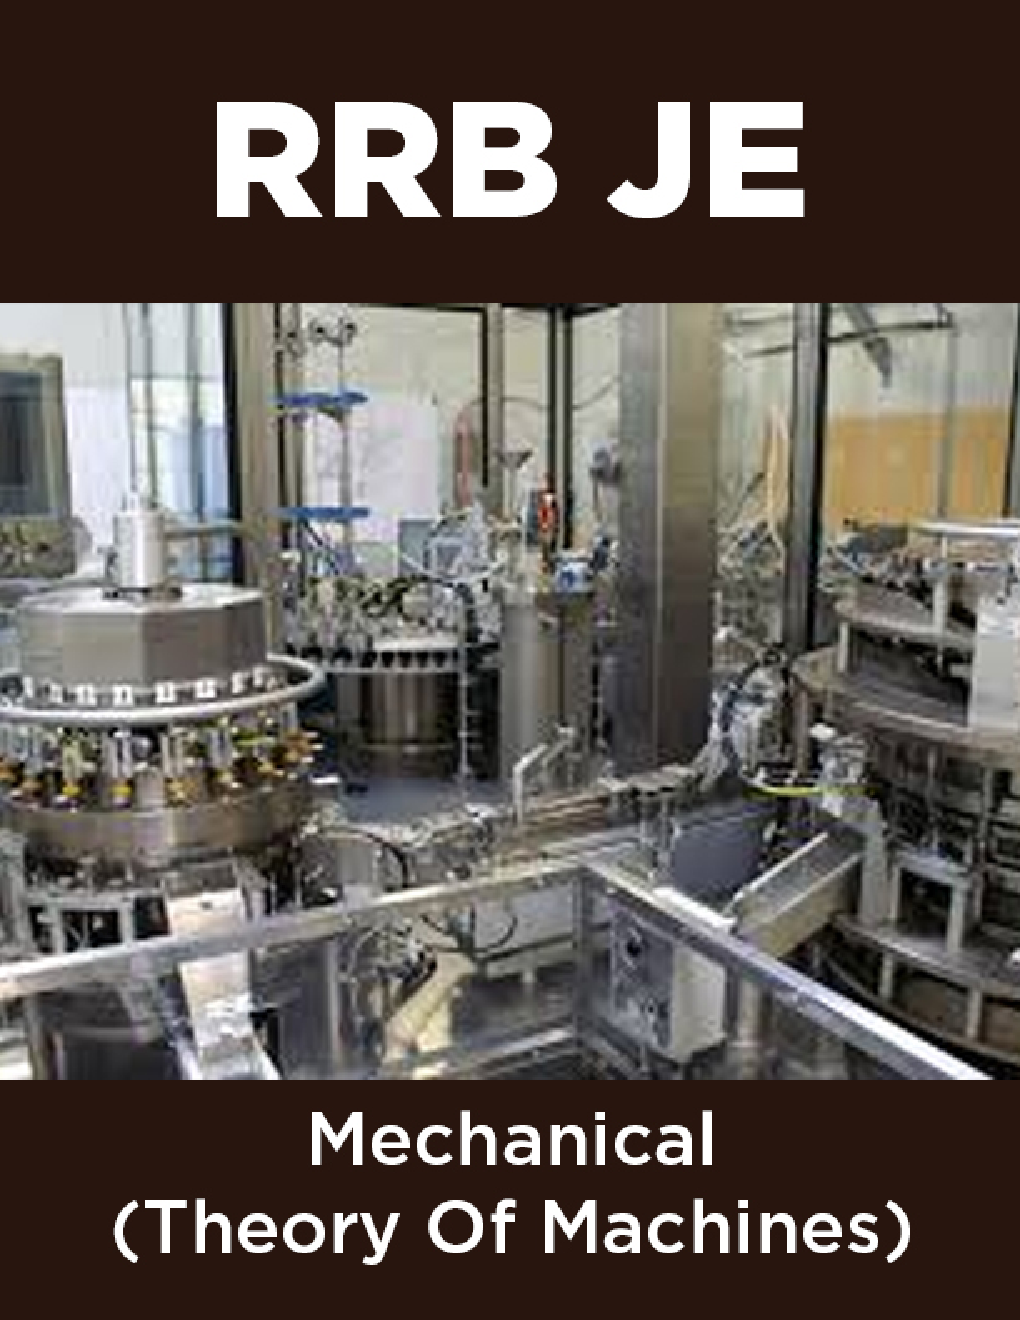 RRB JE Mechanical (Theory Of Machines) - Page 1